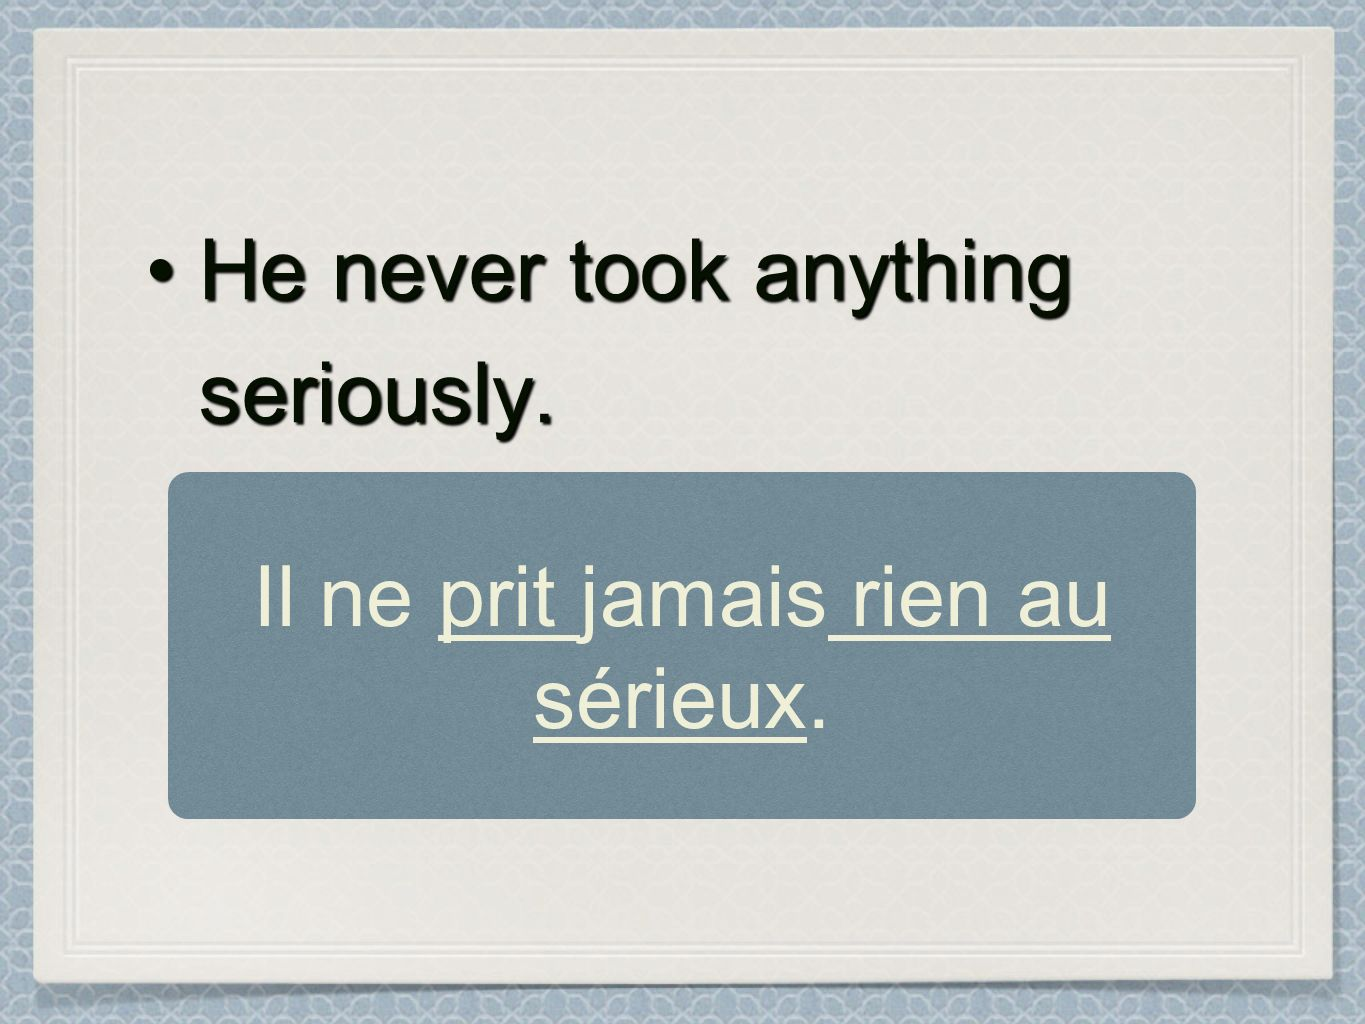 He never took anything seriously.He never took anything seriously. Il ne prit jamais rien au sérieux.